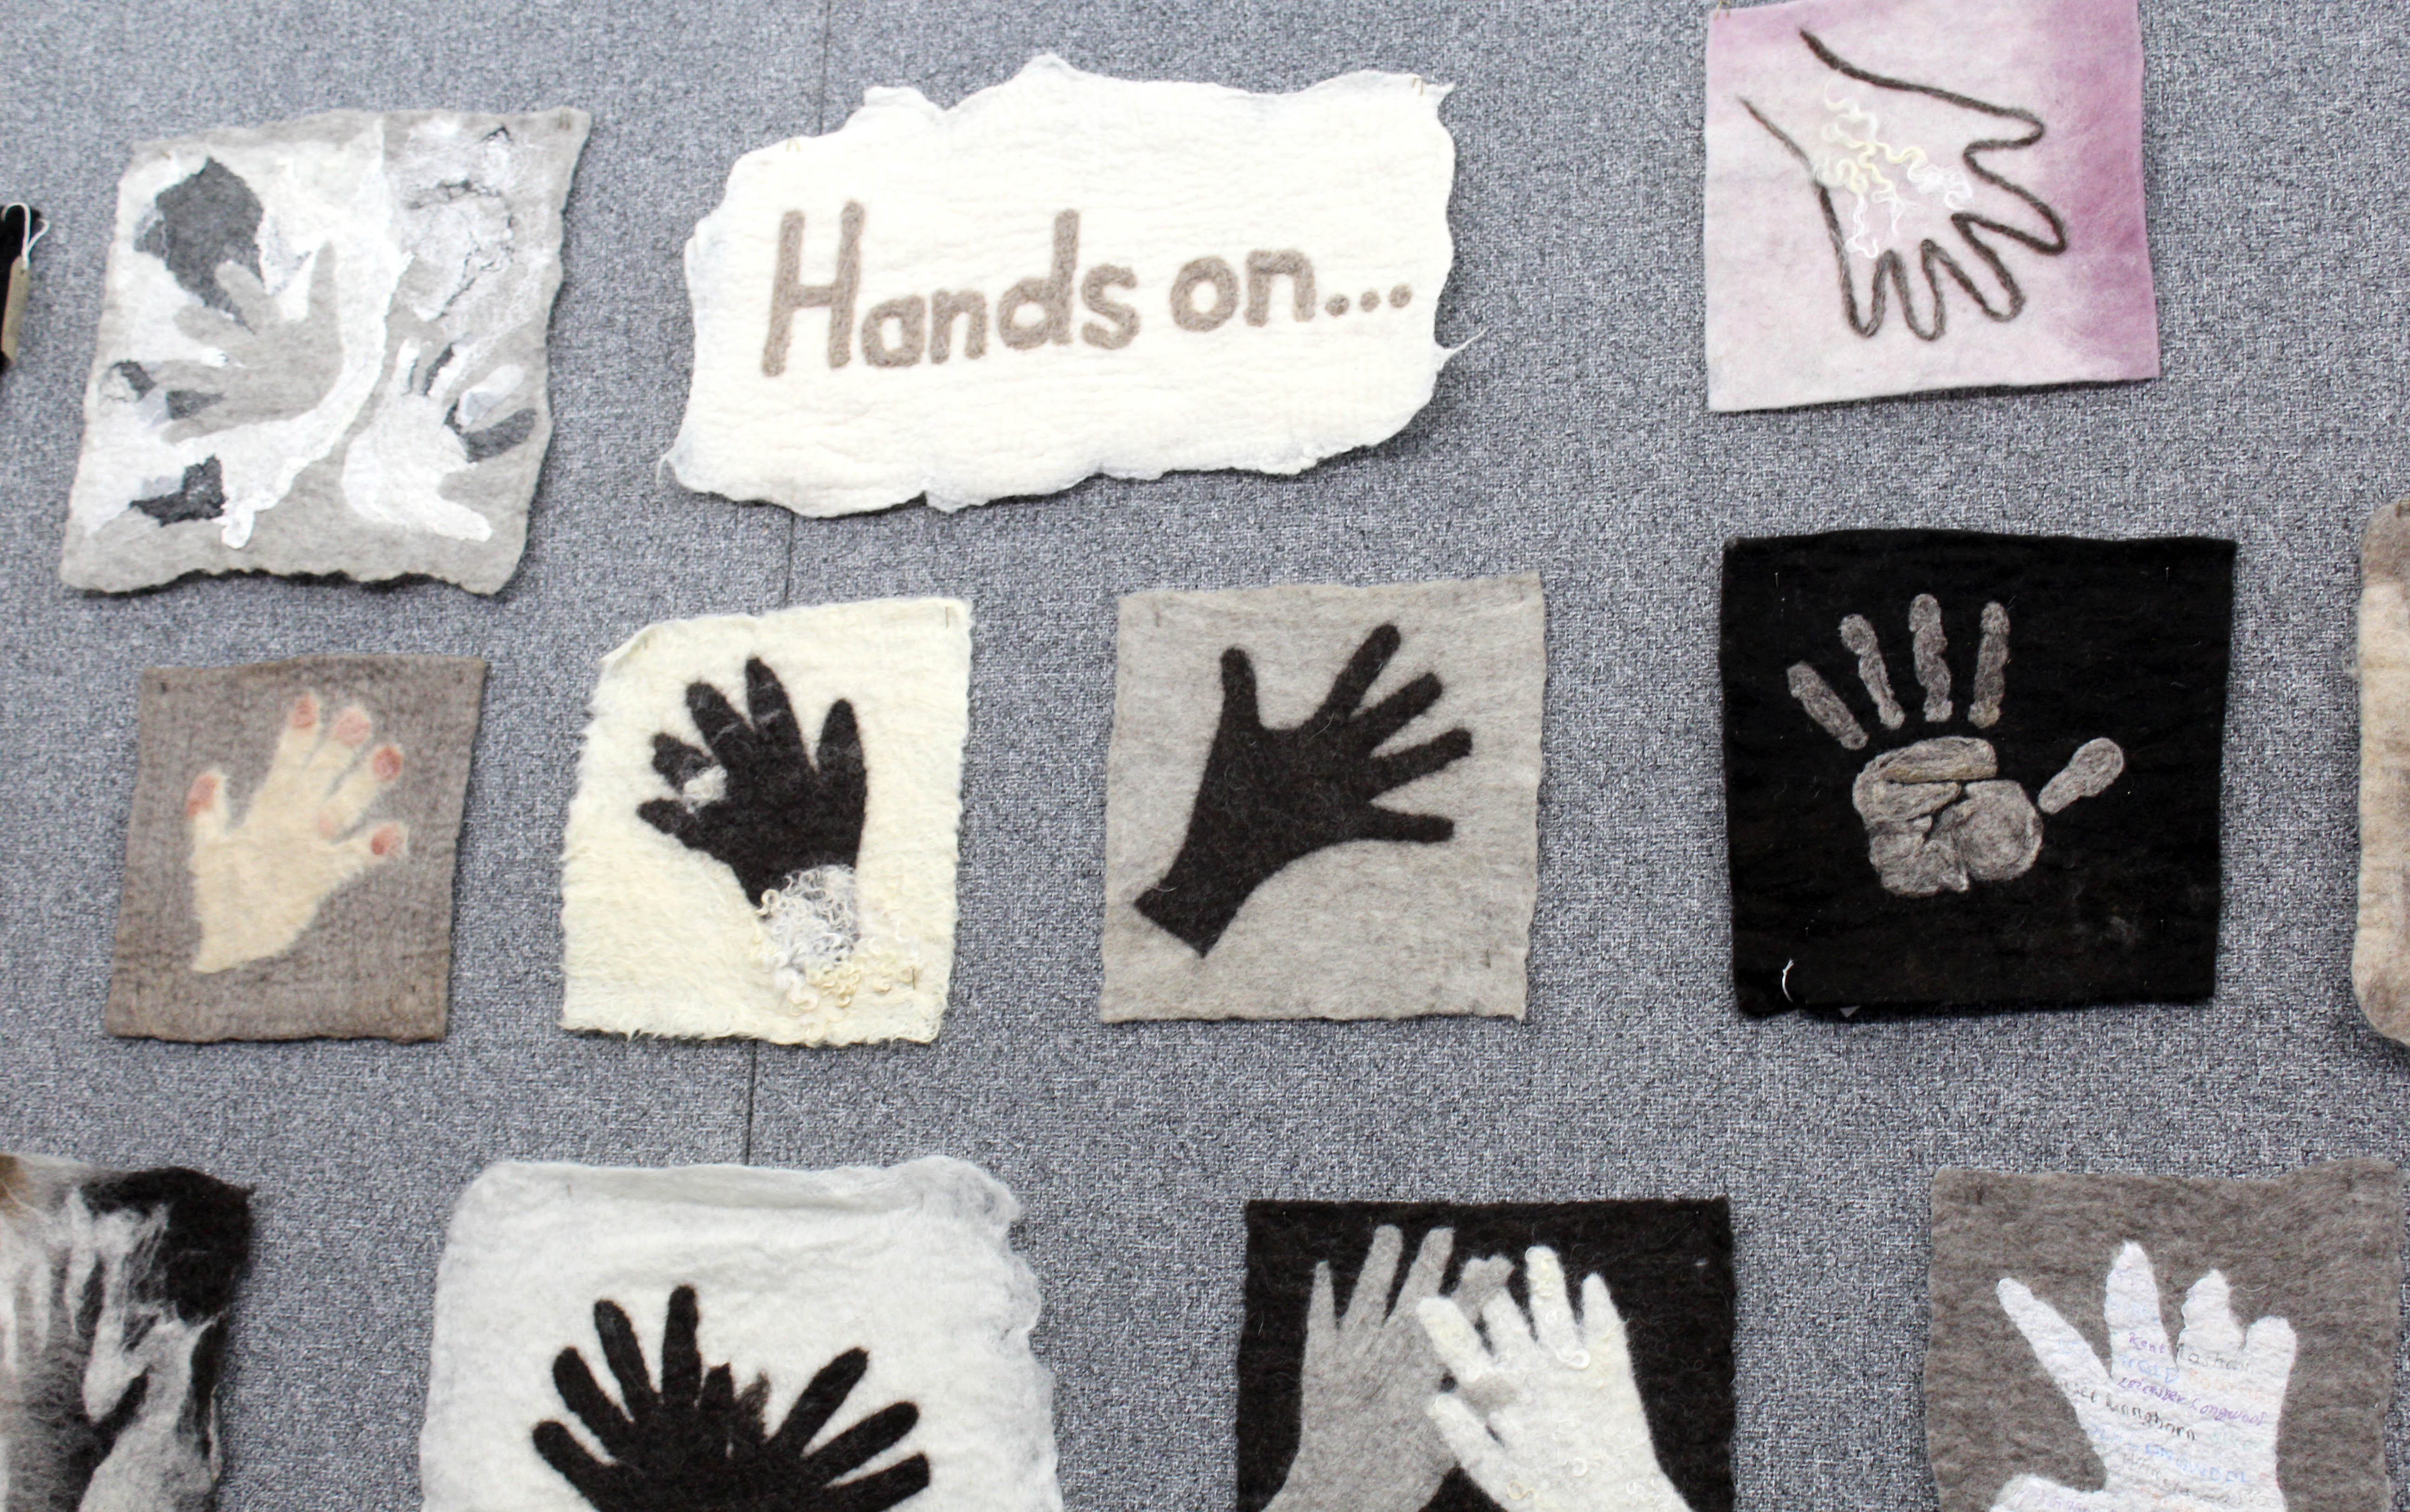 Hands On Felt Campaign